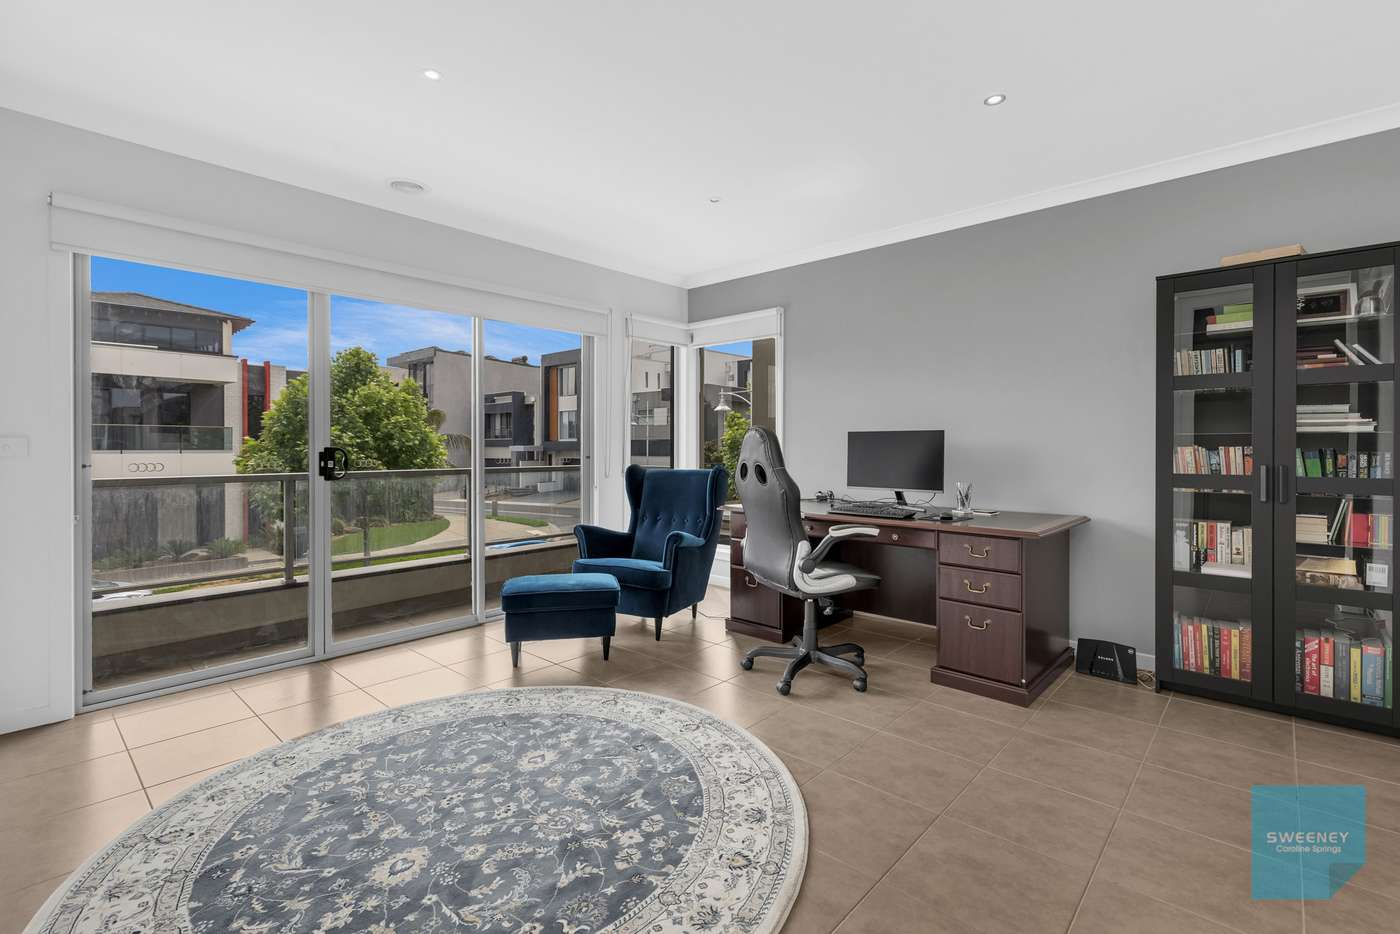 Sixth view of Homely house listing, 58 The Esplanade, Caroline Springs VIC 3023